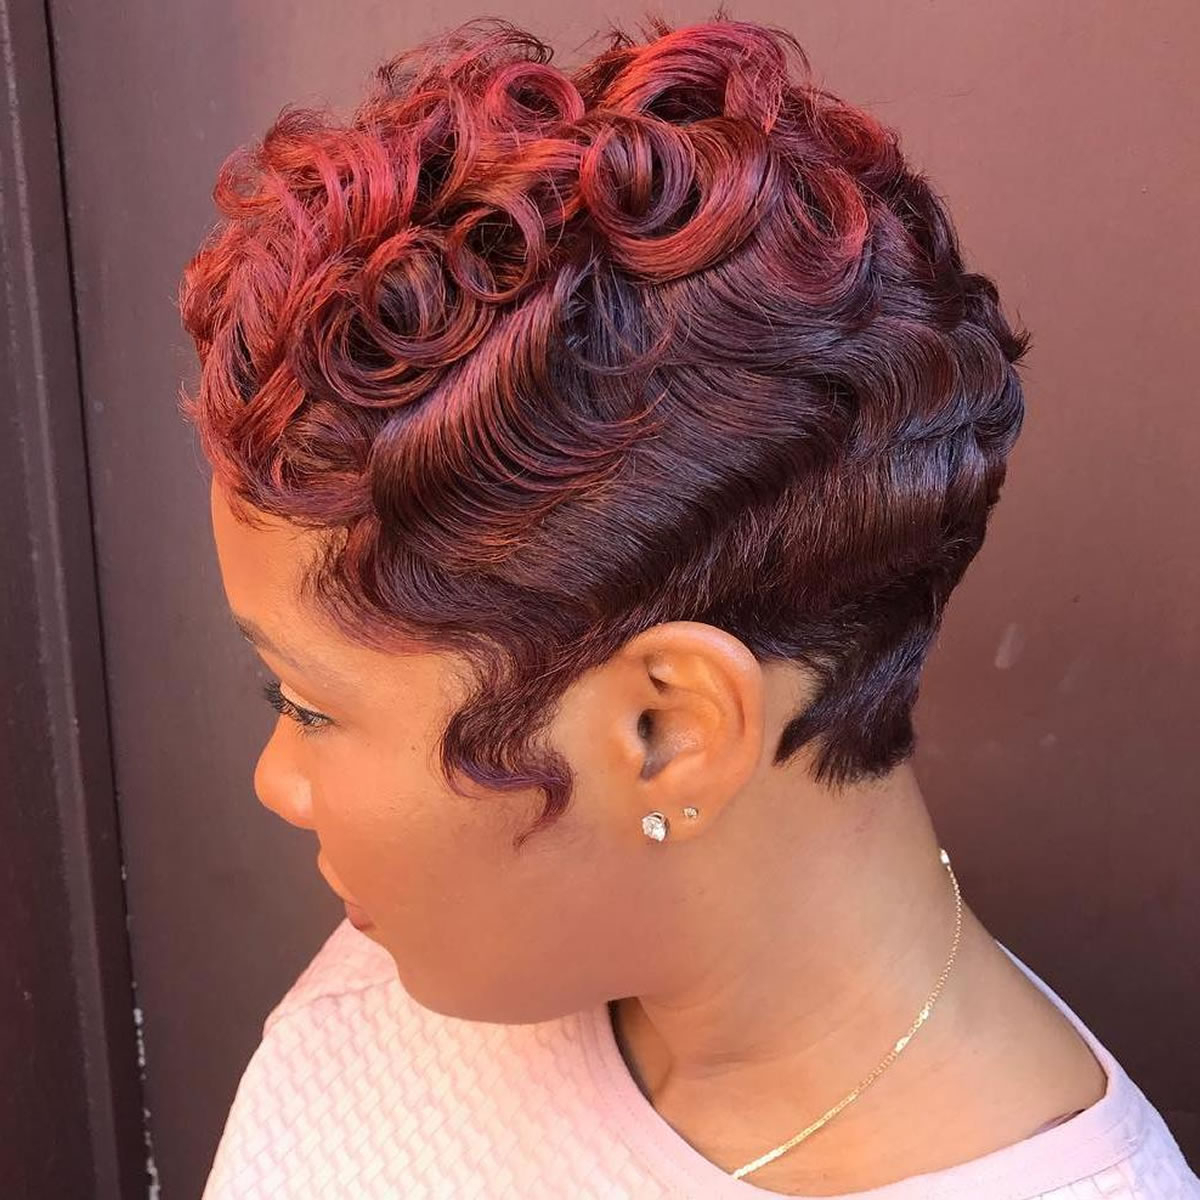 Pretty Pixie Short Haircuts For African American Women 2017 – Hairstyles With Short Haircuts For Black (View 16 of 25)